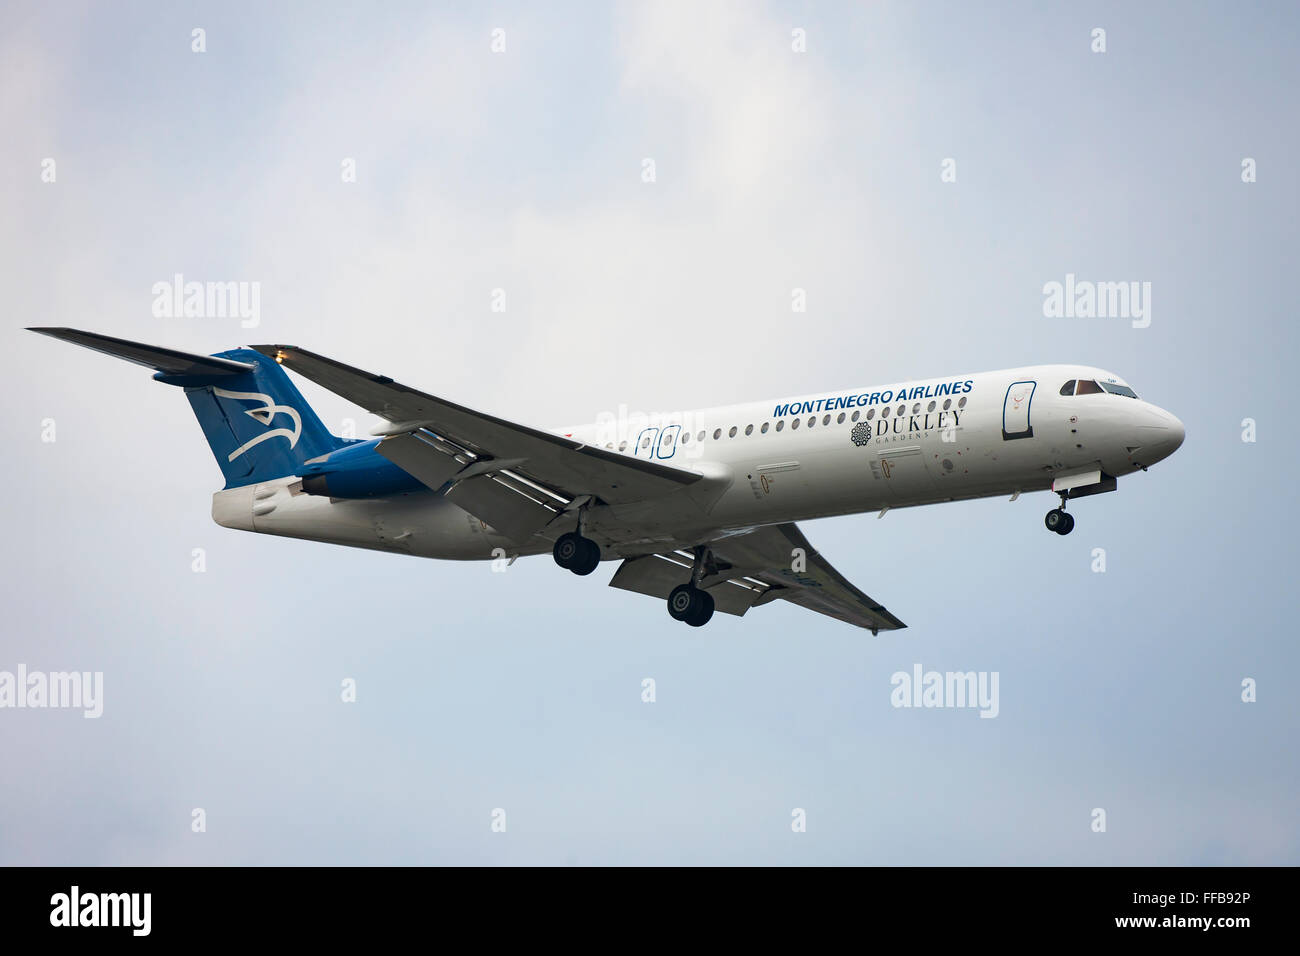 Montenegro Airlines, airliner, in flight Stock Photo